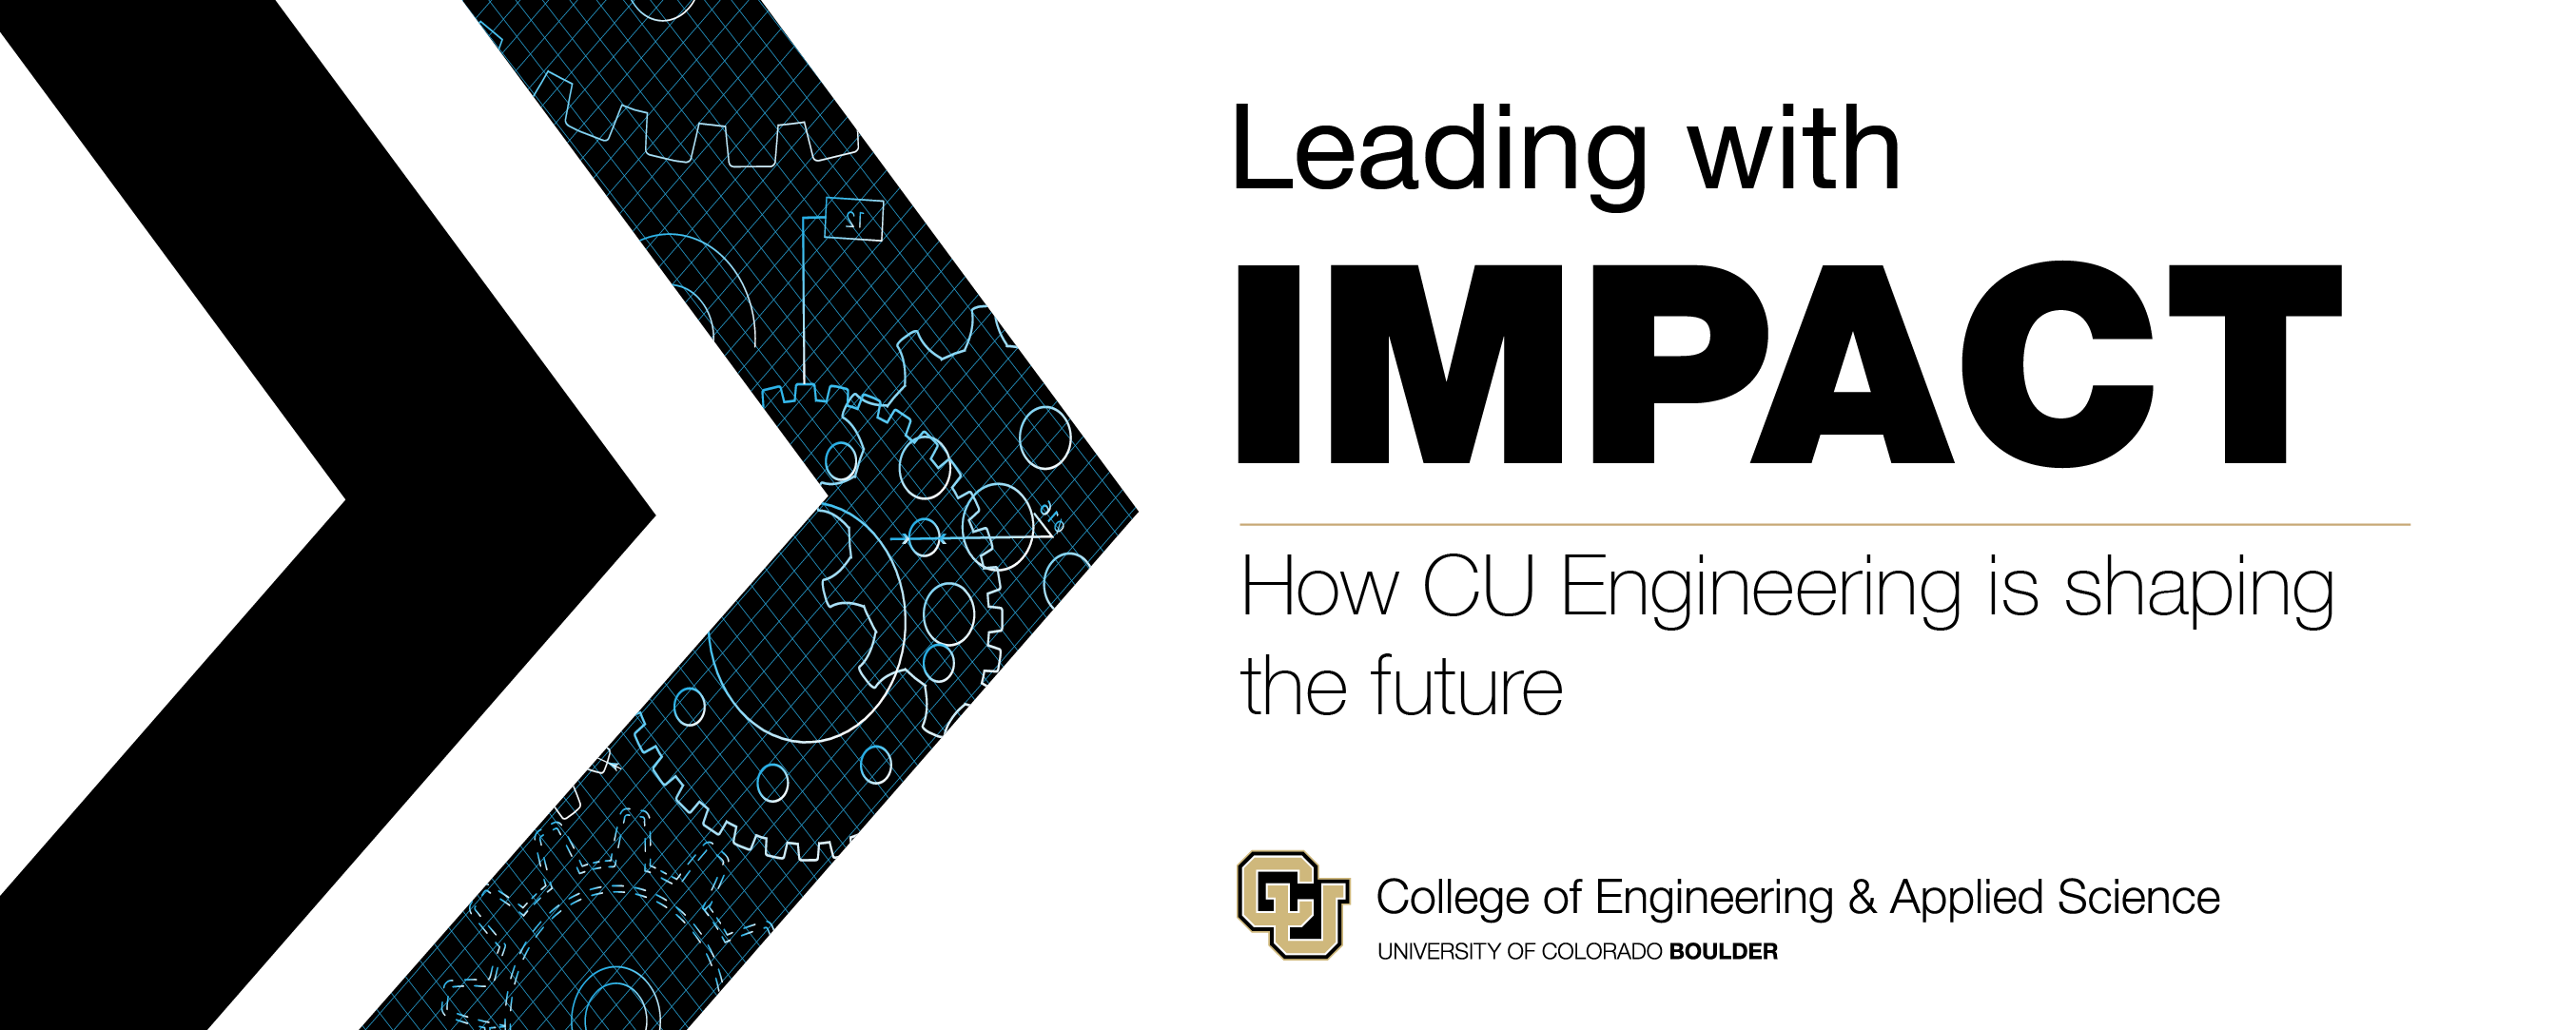 How CU Engineering is shaping the future